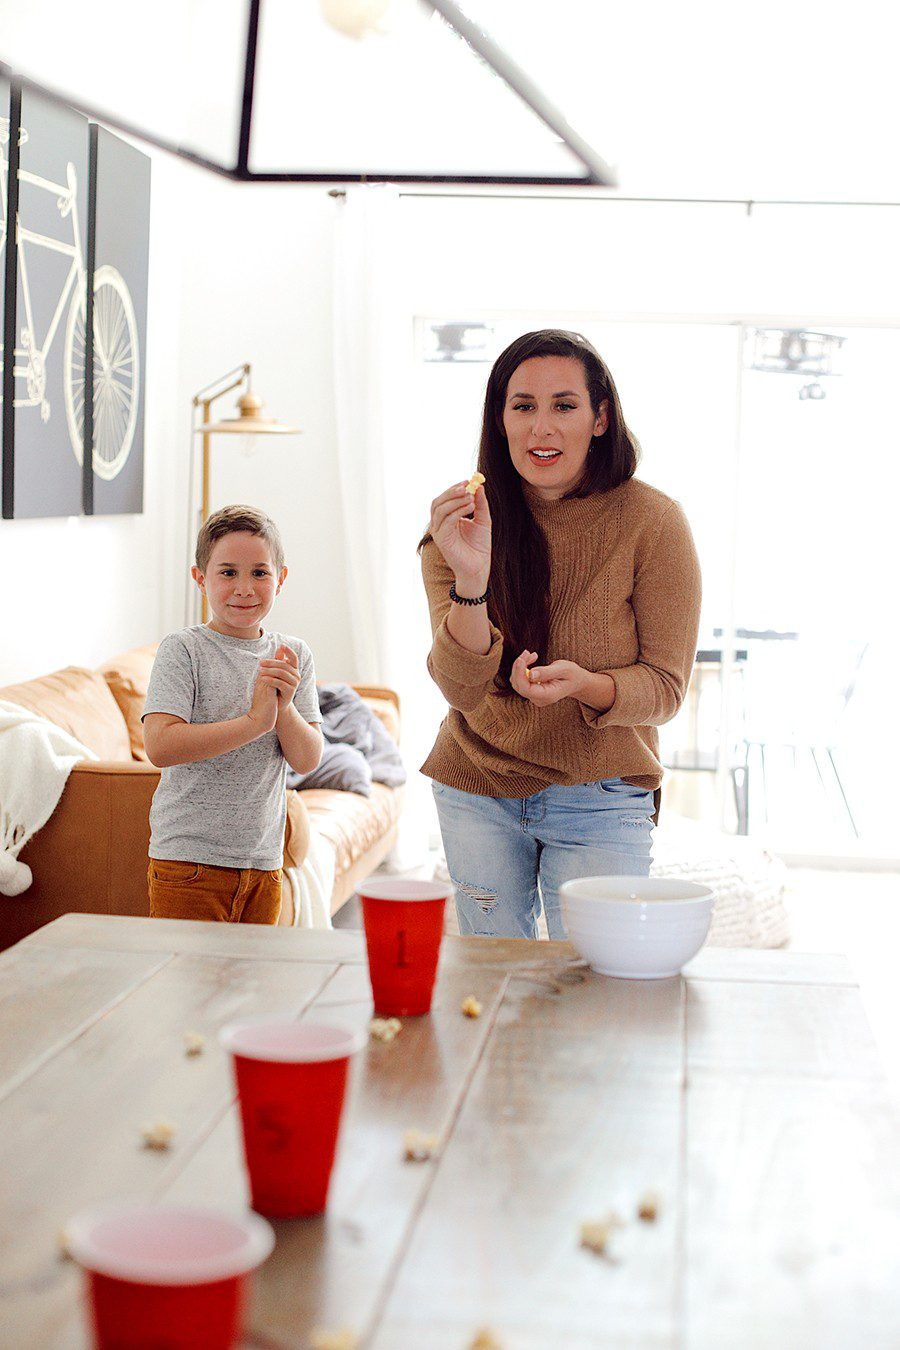 Popcorn toss and more fun popcorn games for family game night! | Family Fun Night by popular Florida lifestyle blog, Fresh Mommy Blog: image of Tabitha Blue tossing popcorn into red plastic cups.